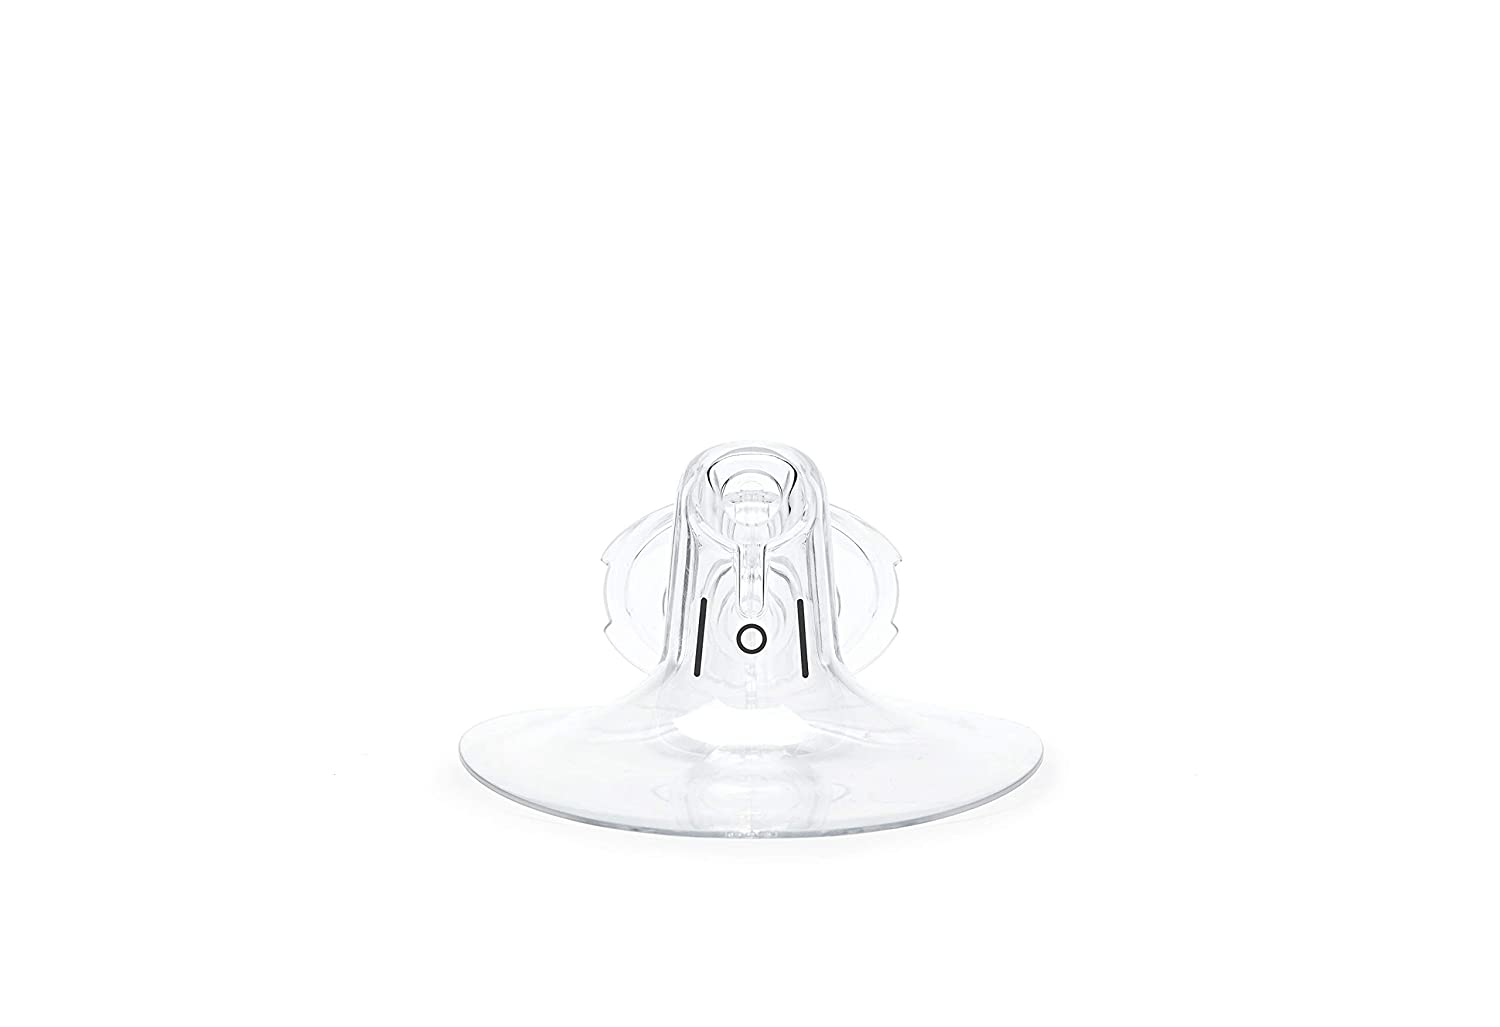 Amazon.com: ELVIE Pump Breast Shield - 21mm | 2 Pack Nipple ...